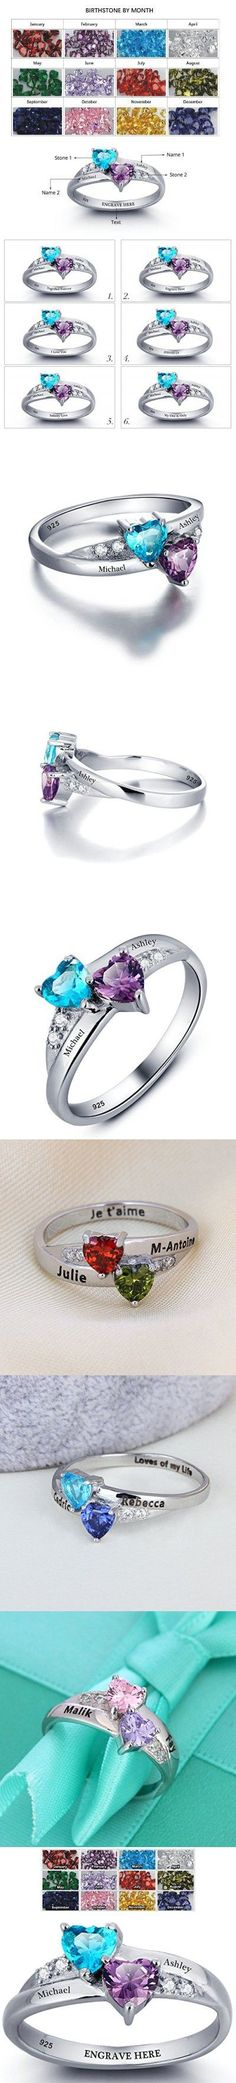 Promise Ring For Her Couples 2 Heart Birthstones 2 Names and 1 Engraving Customized and Personalized Size 8